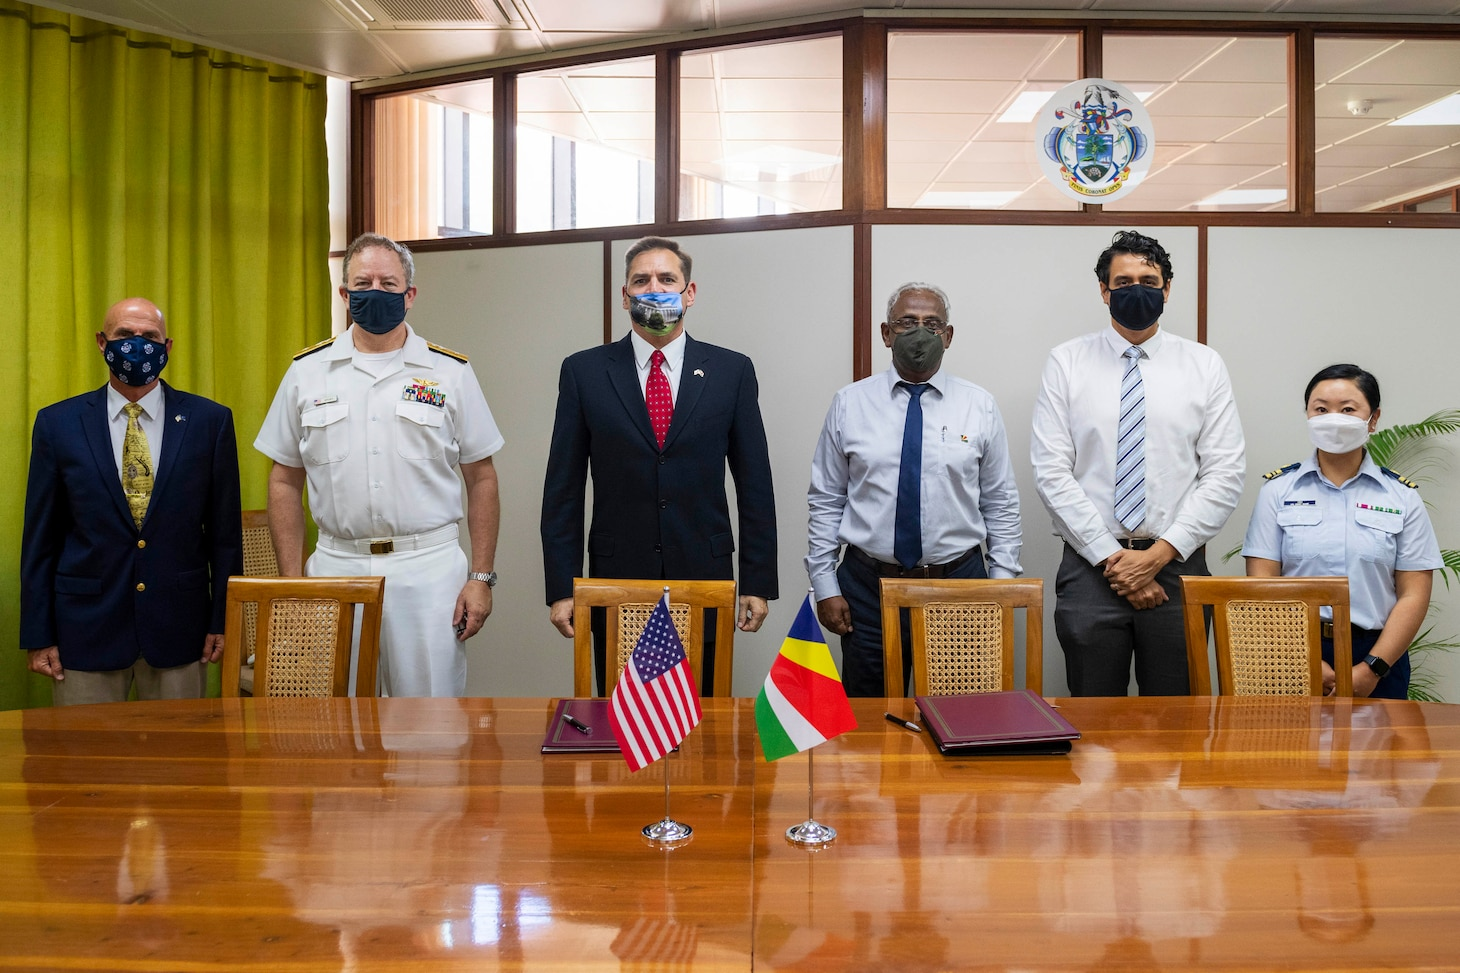 (July 27, 2021) Rear Adm. Jeffrey Spivey, director, Maritime Partnership Program, U.S Naval Forces Europe-Africa, second from left, U.S. Embassy Acting Deputy Chief of Mission Thom Kohl, center, and Seychelles Minister for Internal Affairs, Errol Fonseka, pose for a photo during the official signing of the bilateral agreement between the United States and Seychellois Governments on Countering Illicit Transnational Maritime Activity Operations in conjunction with exercise Cutlass Express 21, July 27, 2021 at the Independence House Annex in Seychelles. This is the first bilateral maritime Agreement between the United States and an East African country.